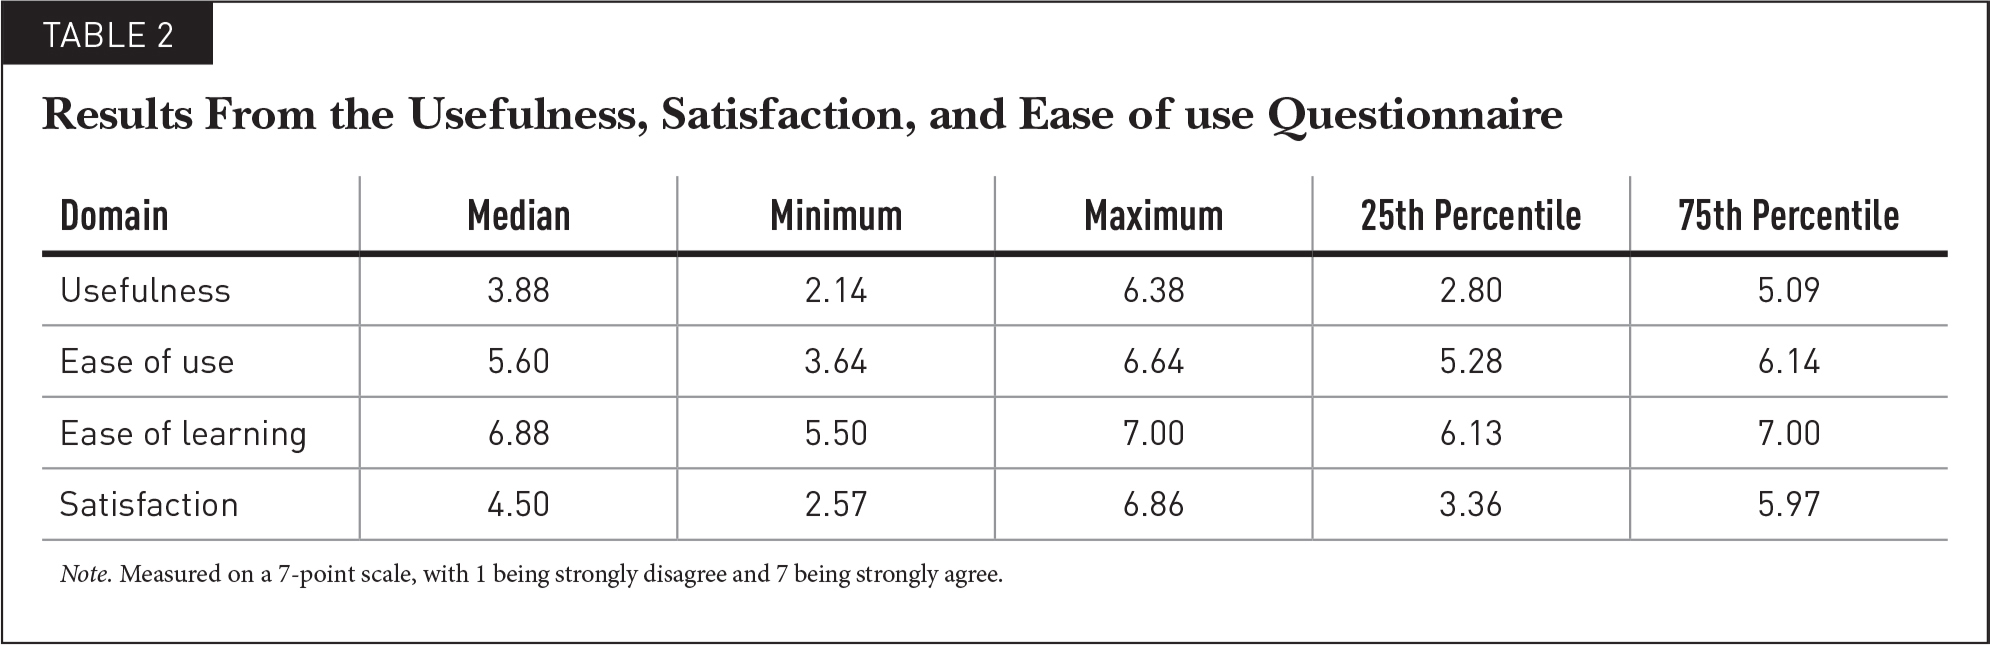 Results From the Usefulness, Satisfaction, and Ease of use Questionnaire